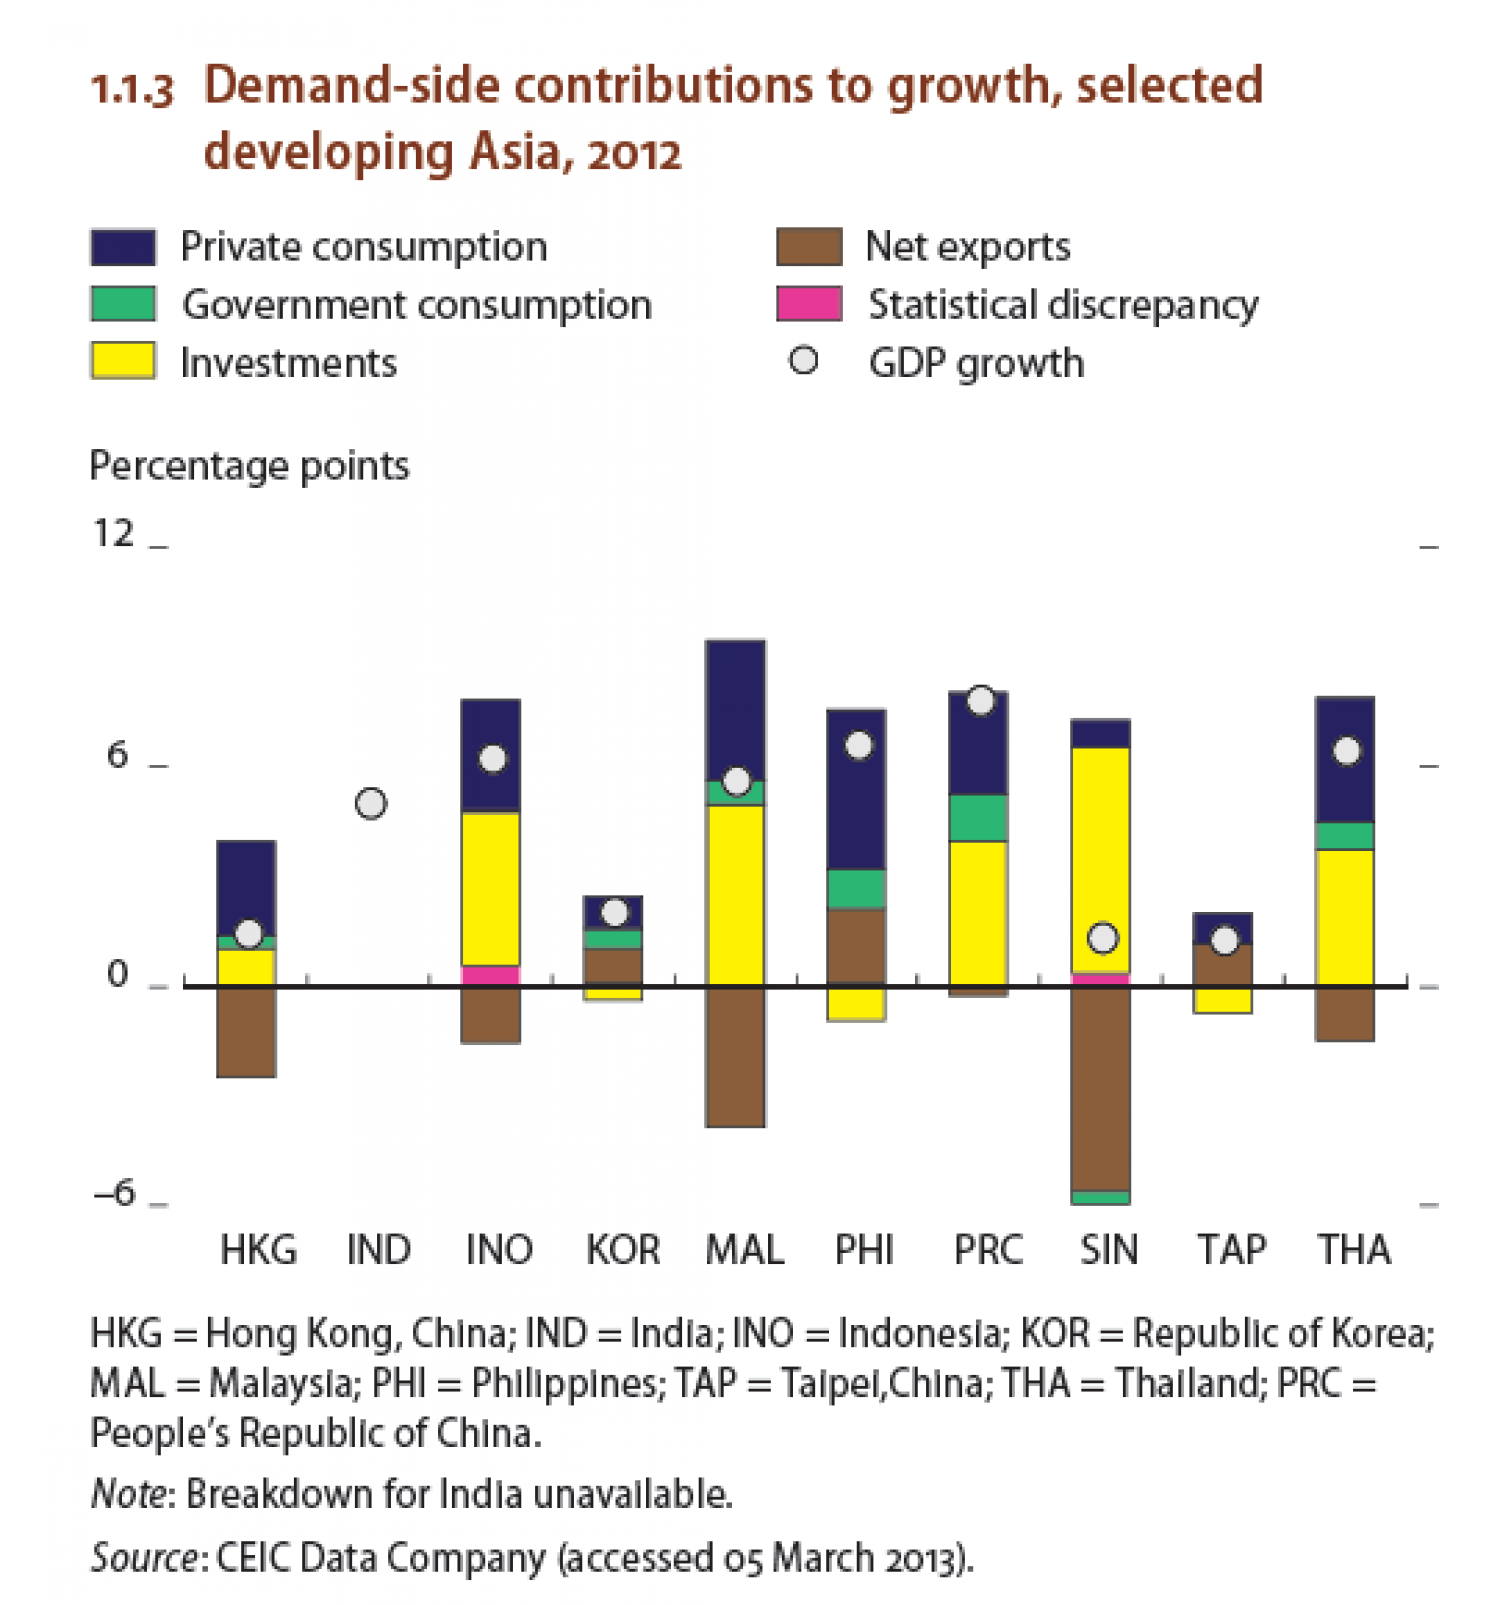 Demand-side contributions to growth, selected developing Asia, 2012 Infographic